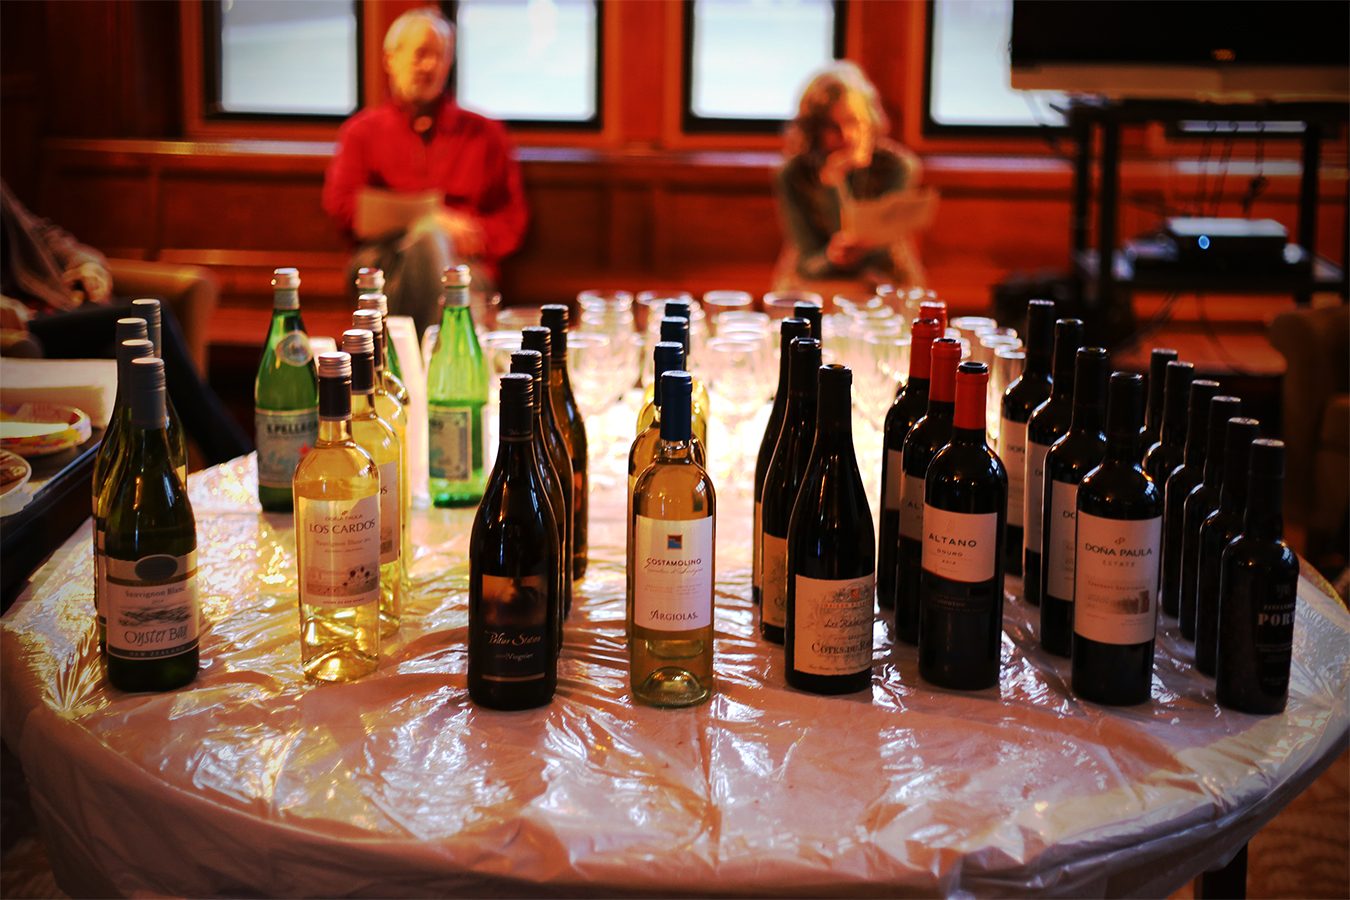 While most seniors in college are still struggling with their thesis and looking forward to all the senior week activities and graduation, psychology major students are the group who people are jealous of because we are always the one who starts our own celebration first.  Every year, psychology department would hold a wine tasting event for seniors a month before the graduation. The interesting part of the wine tasting night is, not only you get to taste different red and white wines that brought from the faculties, enjoy the cheese and food throughout the night, but also you get a chance to win free bottles of wine at the end of the night. Every faculty from the psychology department would pick a bottle of wine they like but the students would not know who bring what wine. The rule of the game is that the students would get a paper which include the description of each wine which includes the taste of the wine and why that person like it. After tasting, students need to match the wine with the faculties. The person who guesses the most right would get to take the free bottles of wine home.  it was a really fun night. Professors got to share their life and interests with the senior students. The competition was intense and students communicated a lot about their own ideas of each professor's taste like. Apparently, I wasn't able to capture the winner of the night, since she is busing taking photos the whole time!